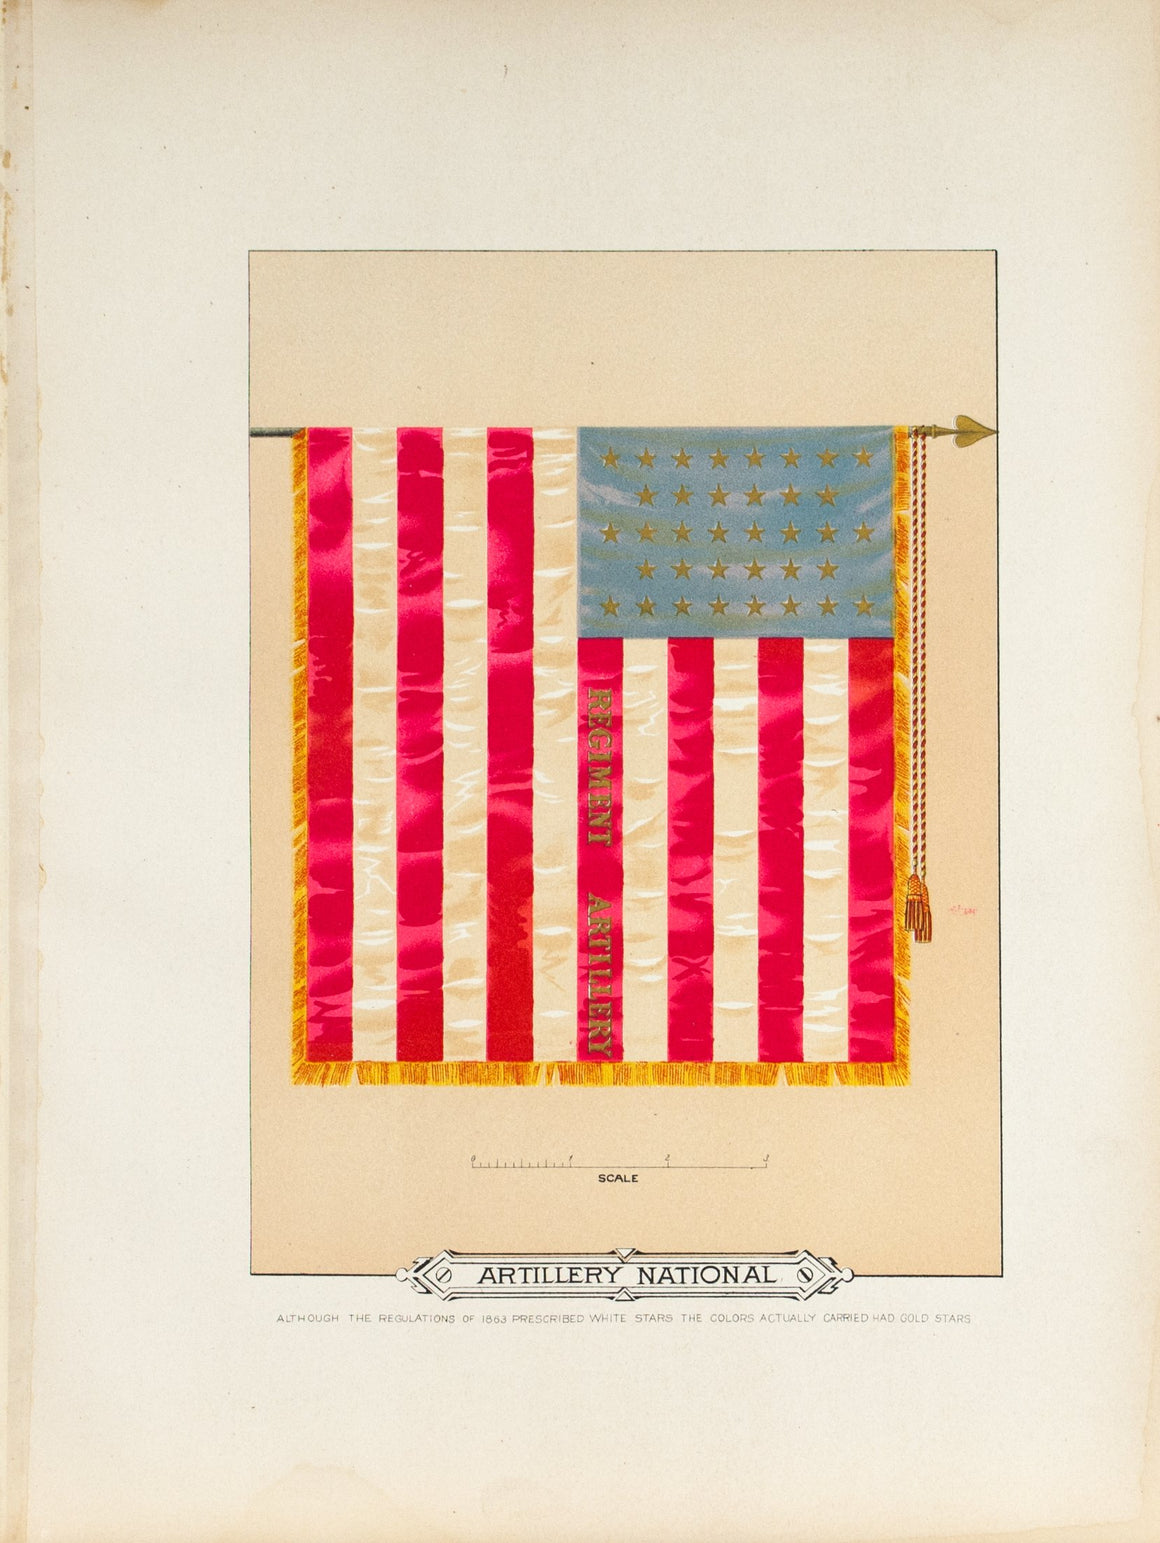 Artillery National Antique Civil War Union Army Flag Print 1887